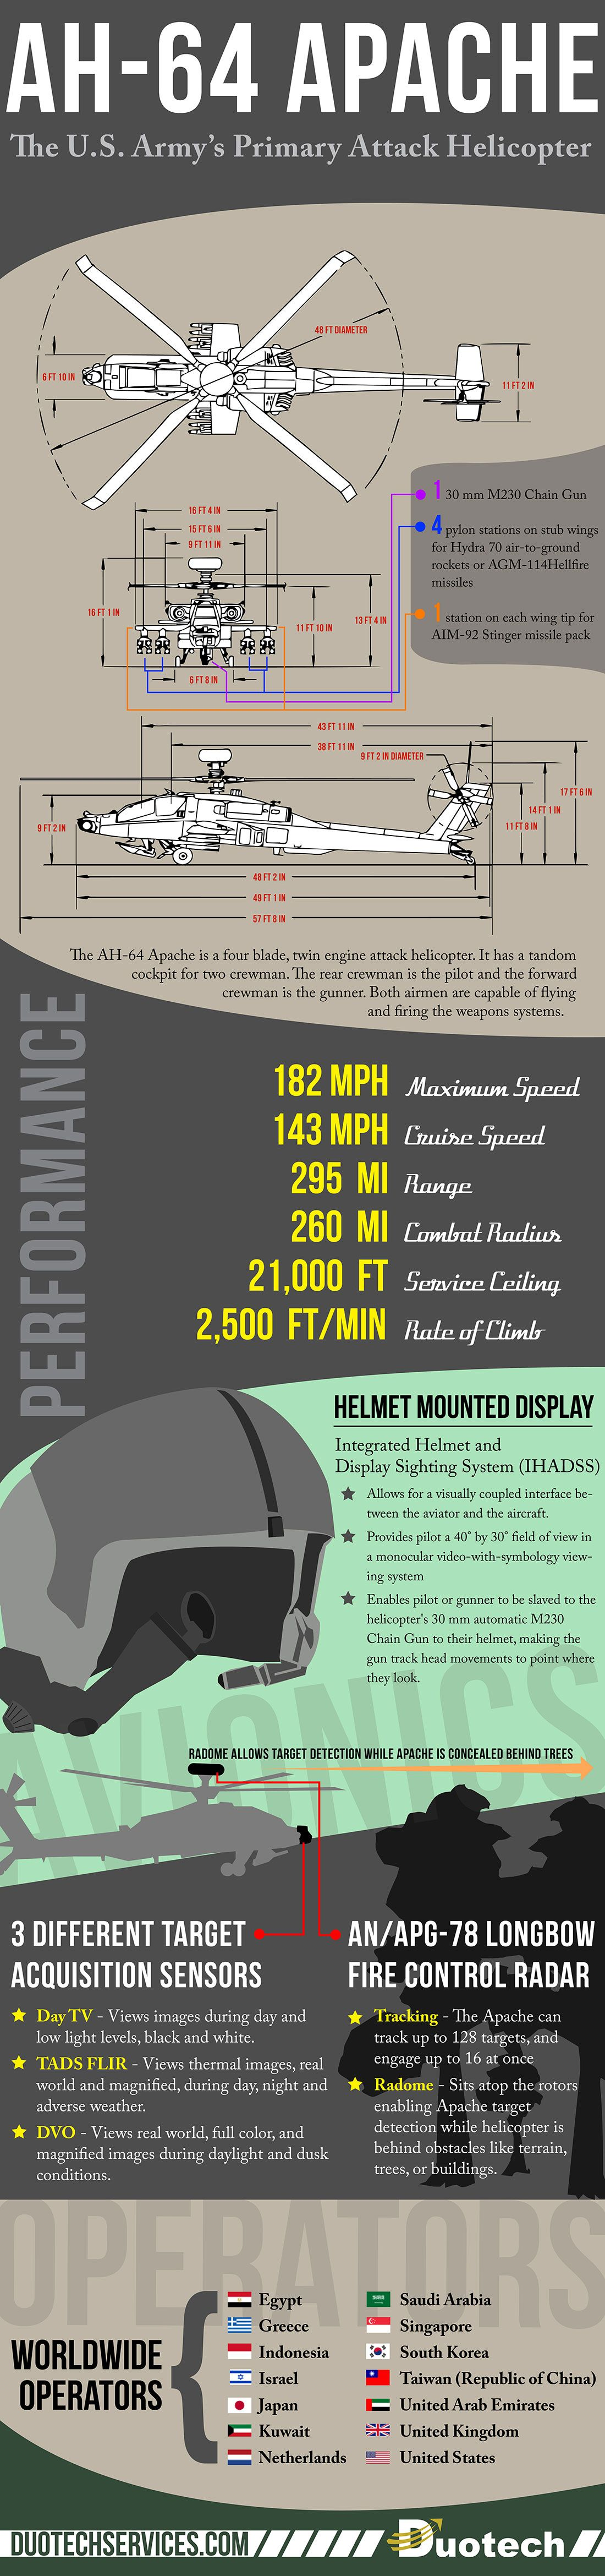 AH-64 Apache Facts Infographic